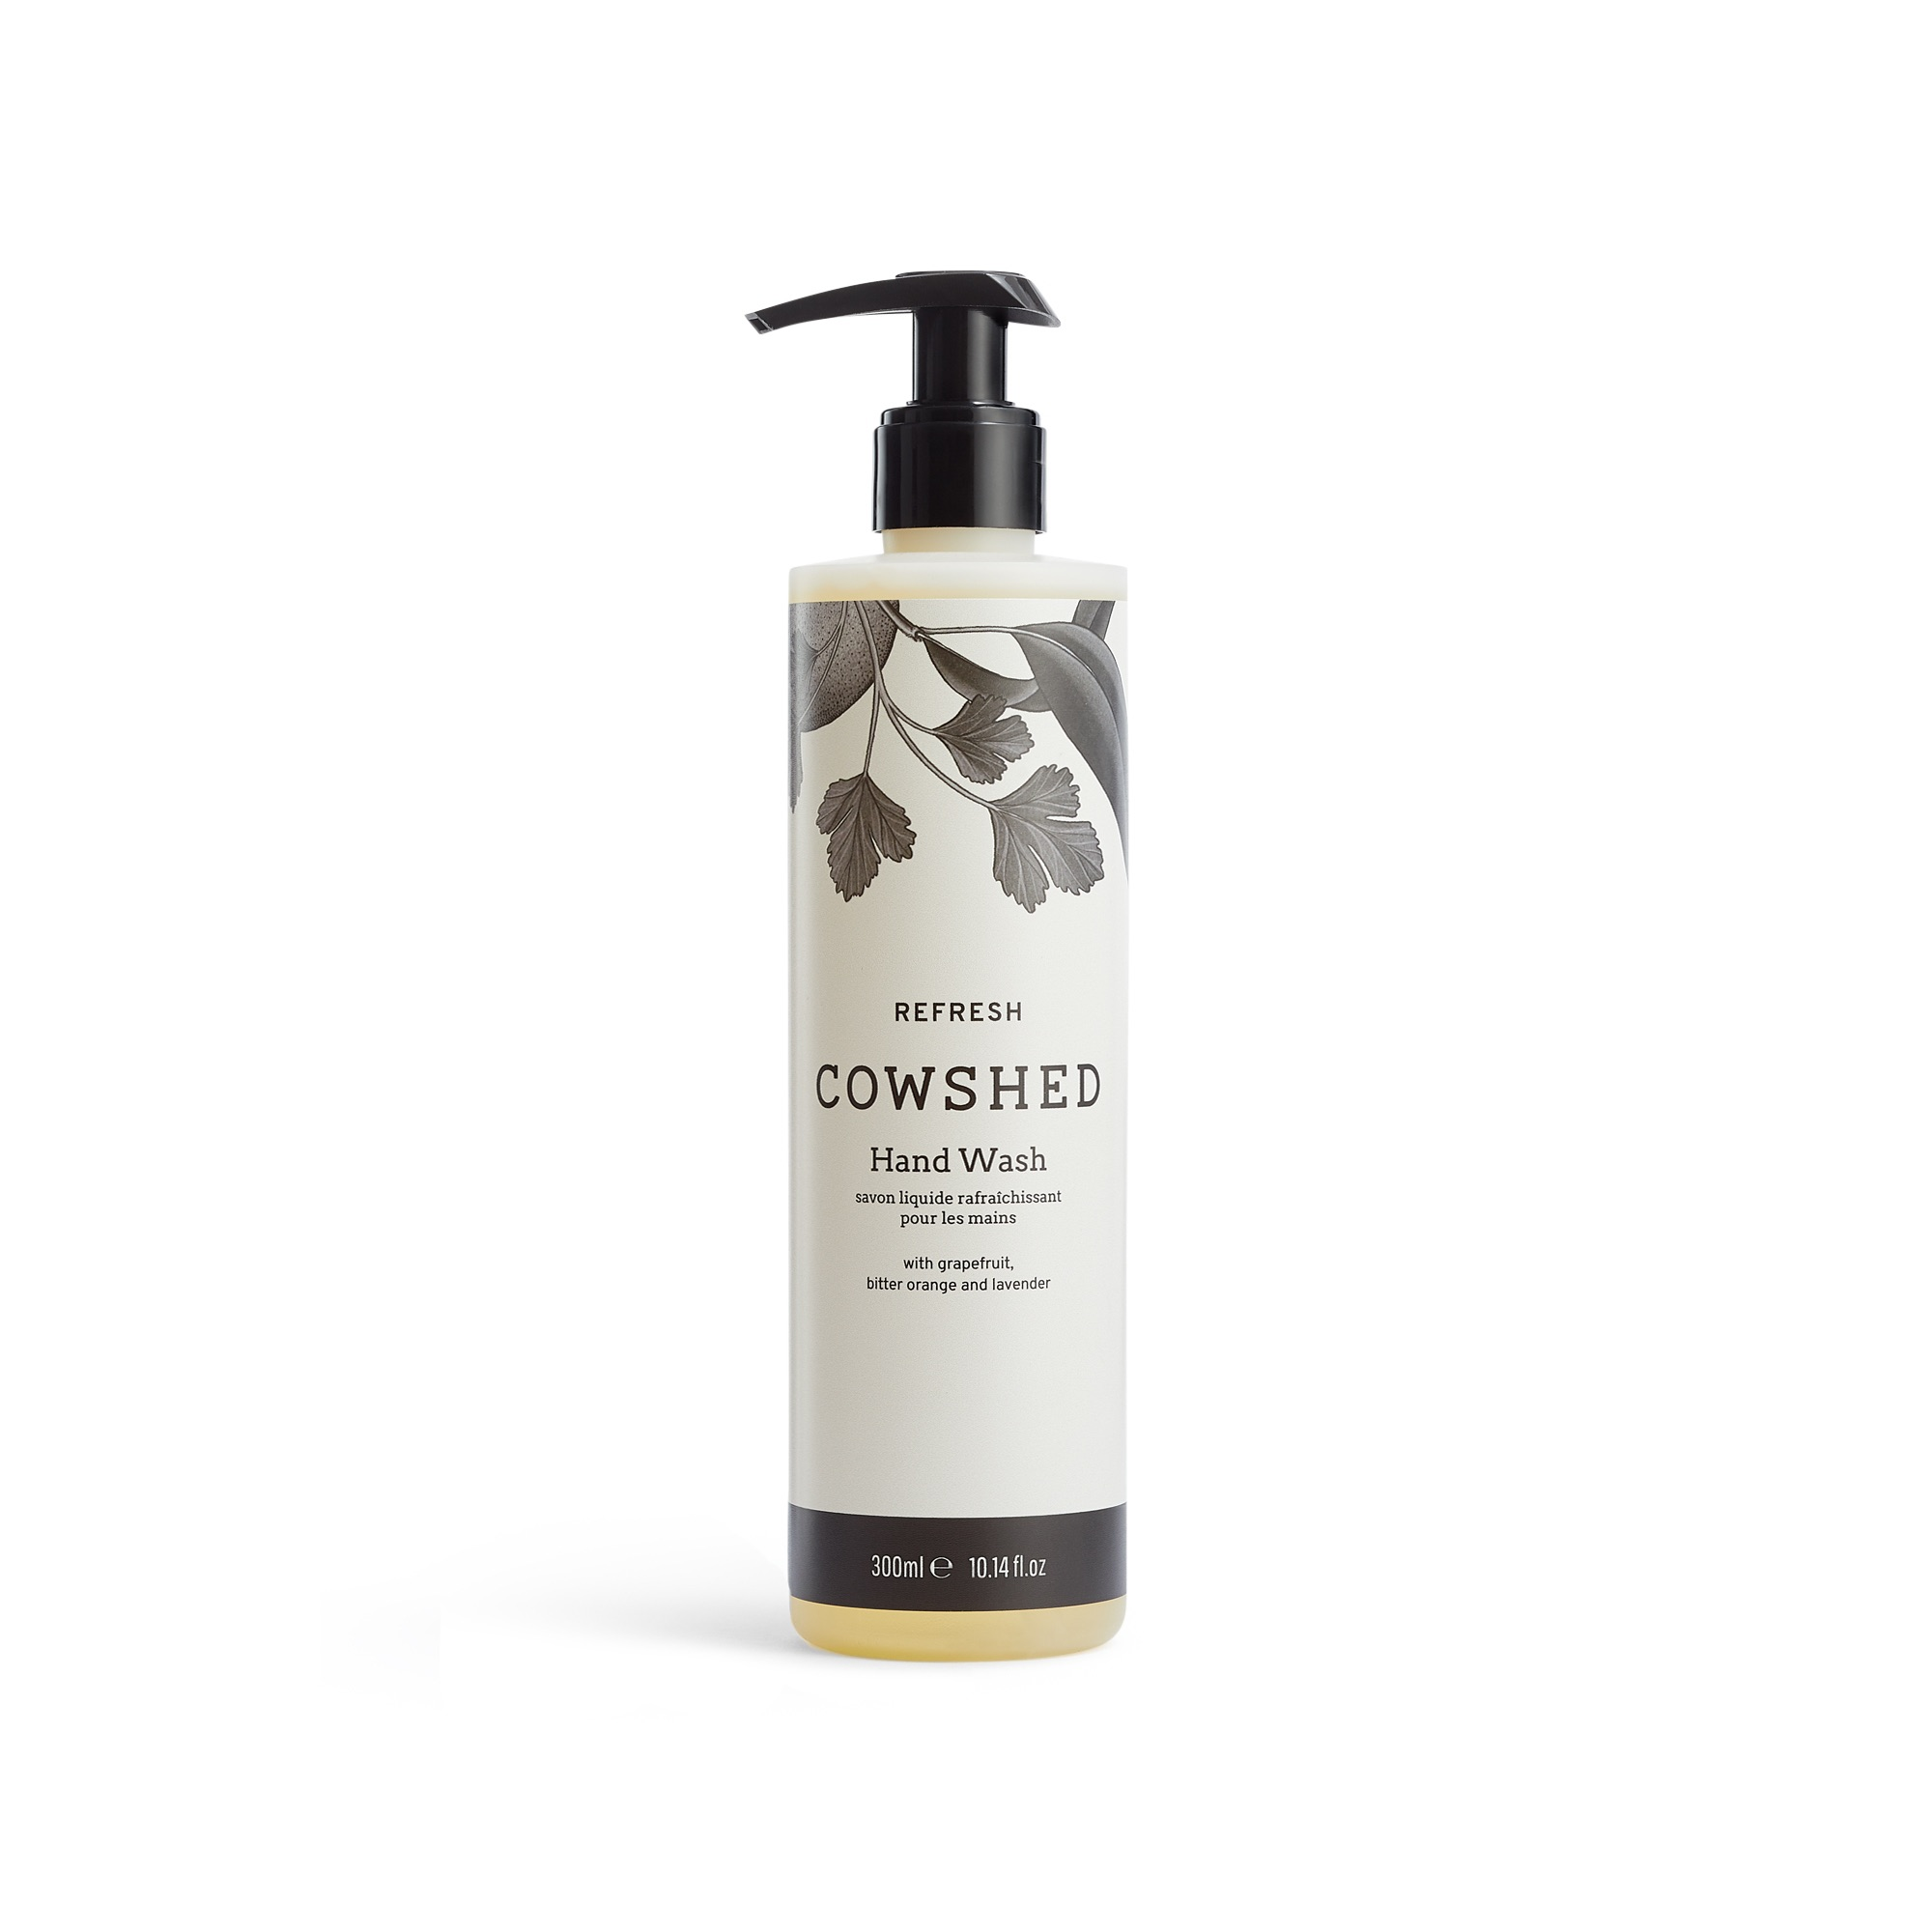 Cowshed REFRESH Hand Wash 10.5oz (300ml)